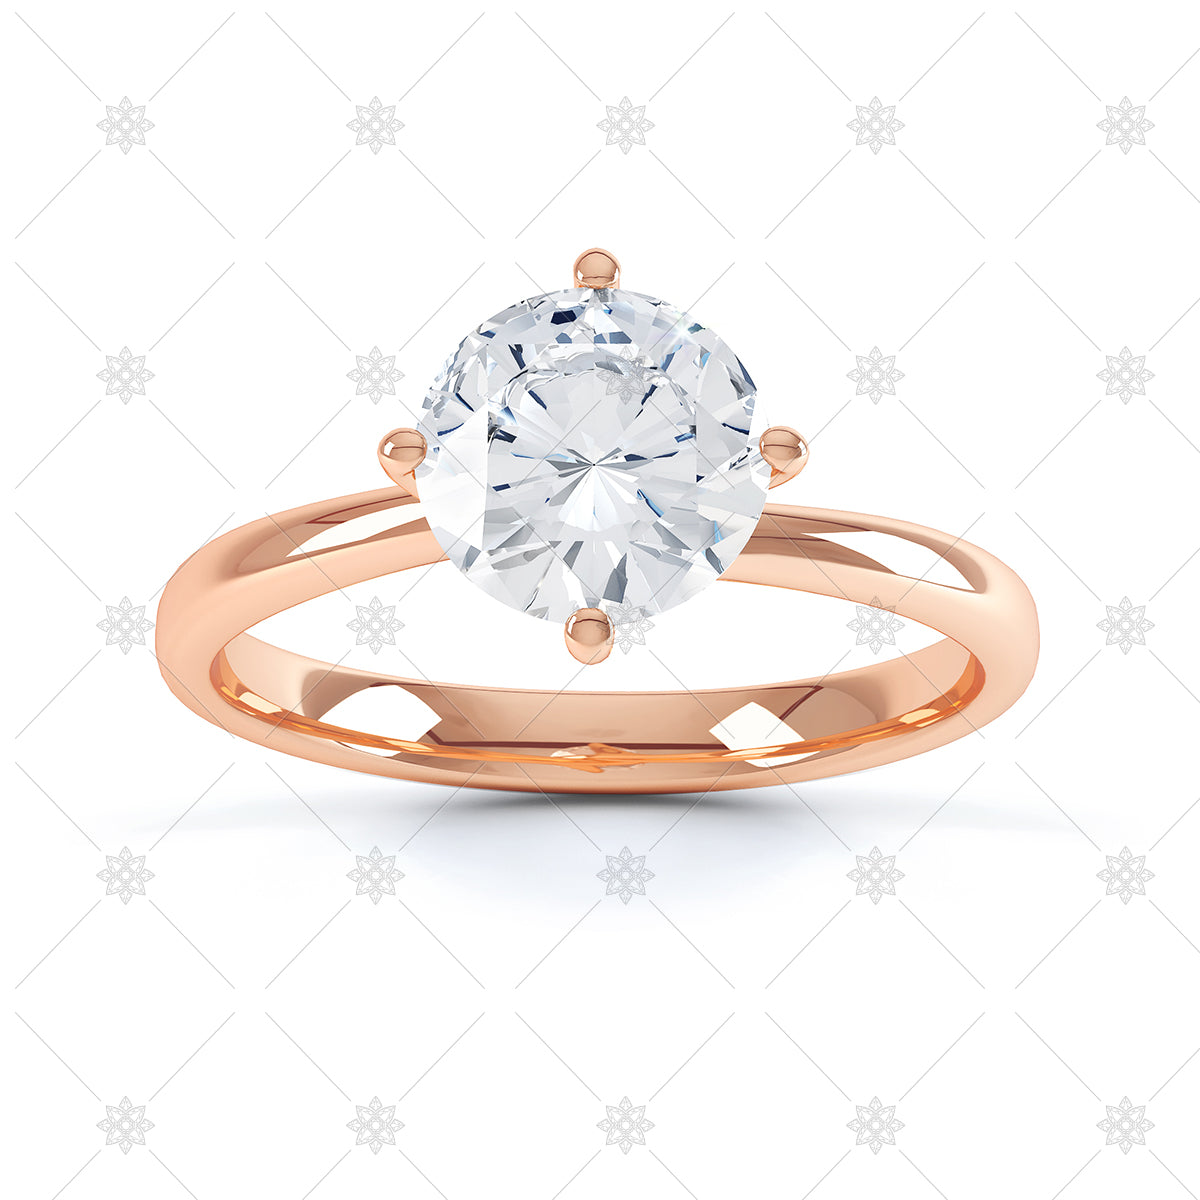 Rose gold diamond ring image